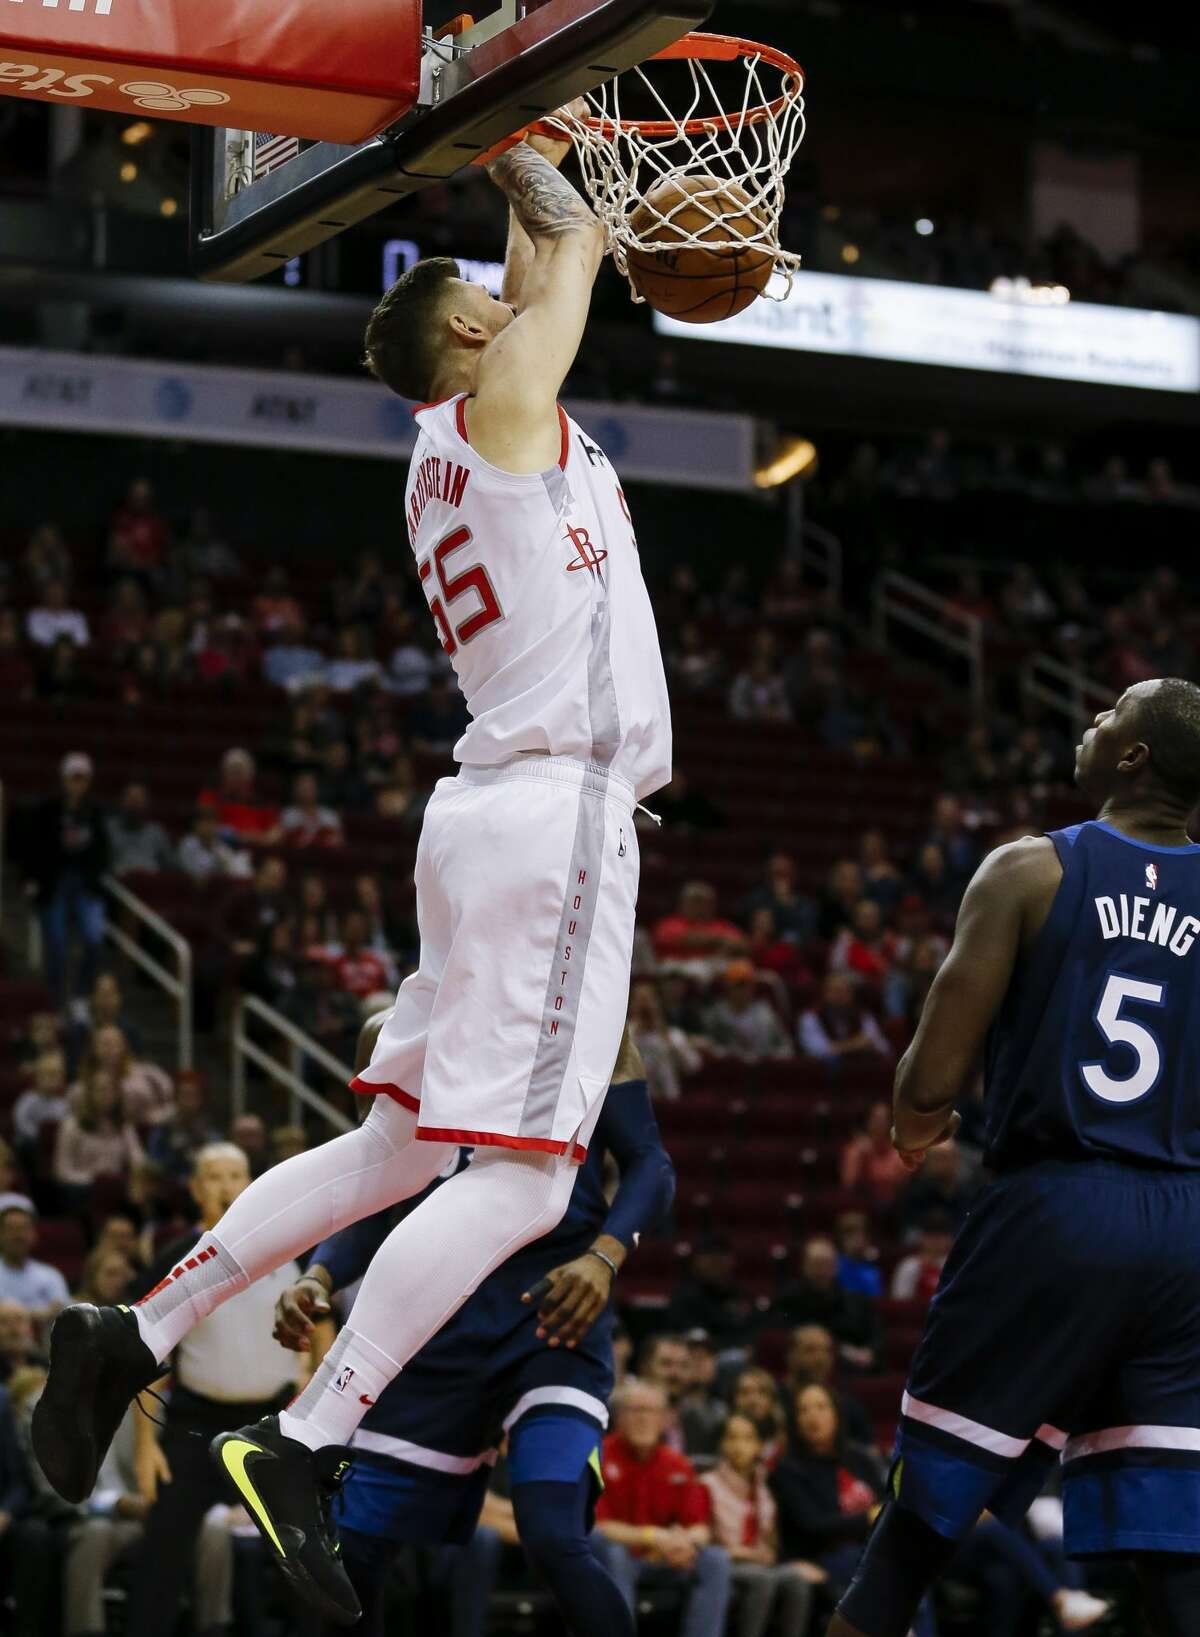 Houston Rockets center Isaiah Hartenstein (55) dunks the ball against the Minnesota Timberwolves during the first half of an NBA game at the Toyota Center Saturday, Jan. 11, 2020, in Houston. The Rockets won 139-109.